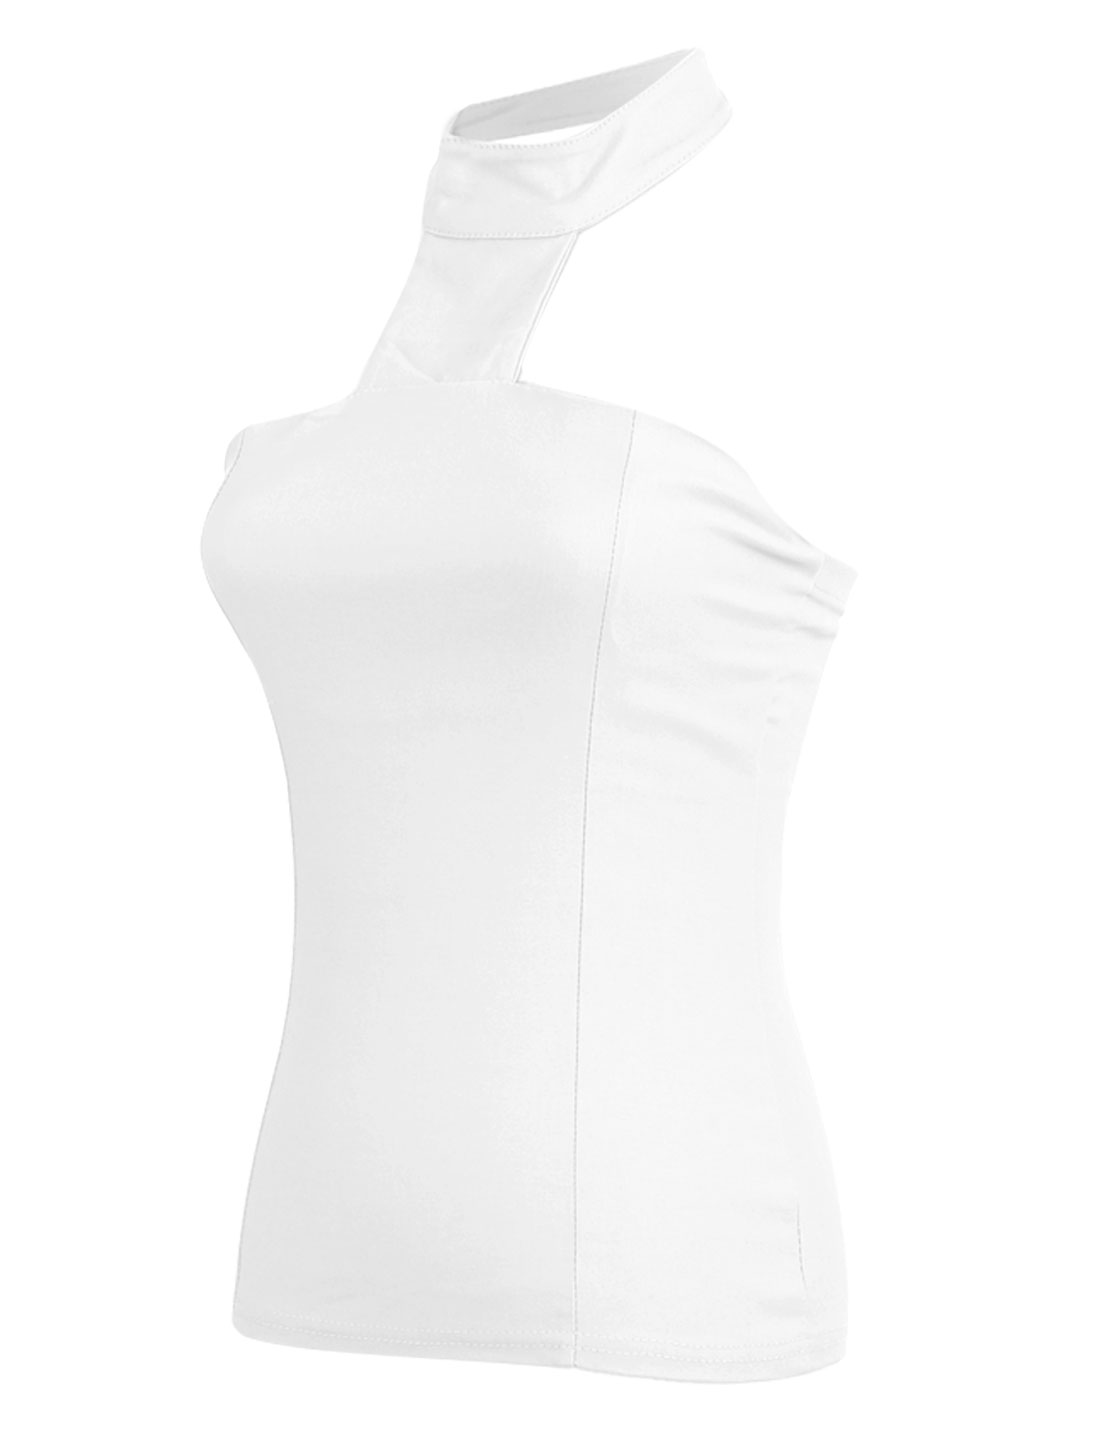 Ladies Pure White Color Halter Neck Fake Crystal Button Decor Back Tops XS